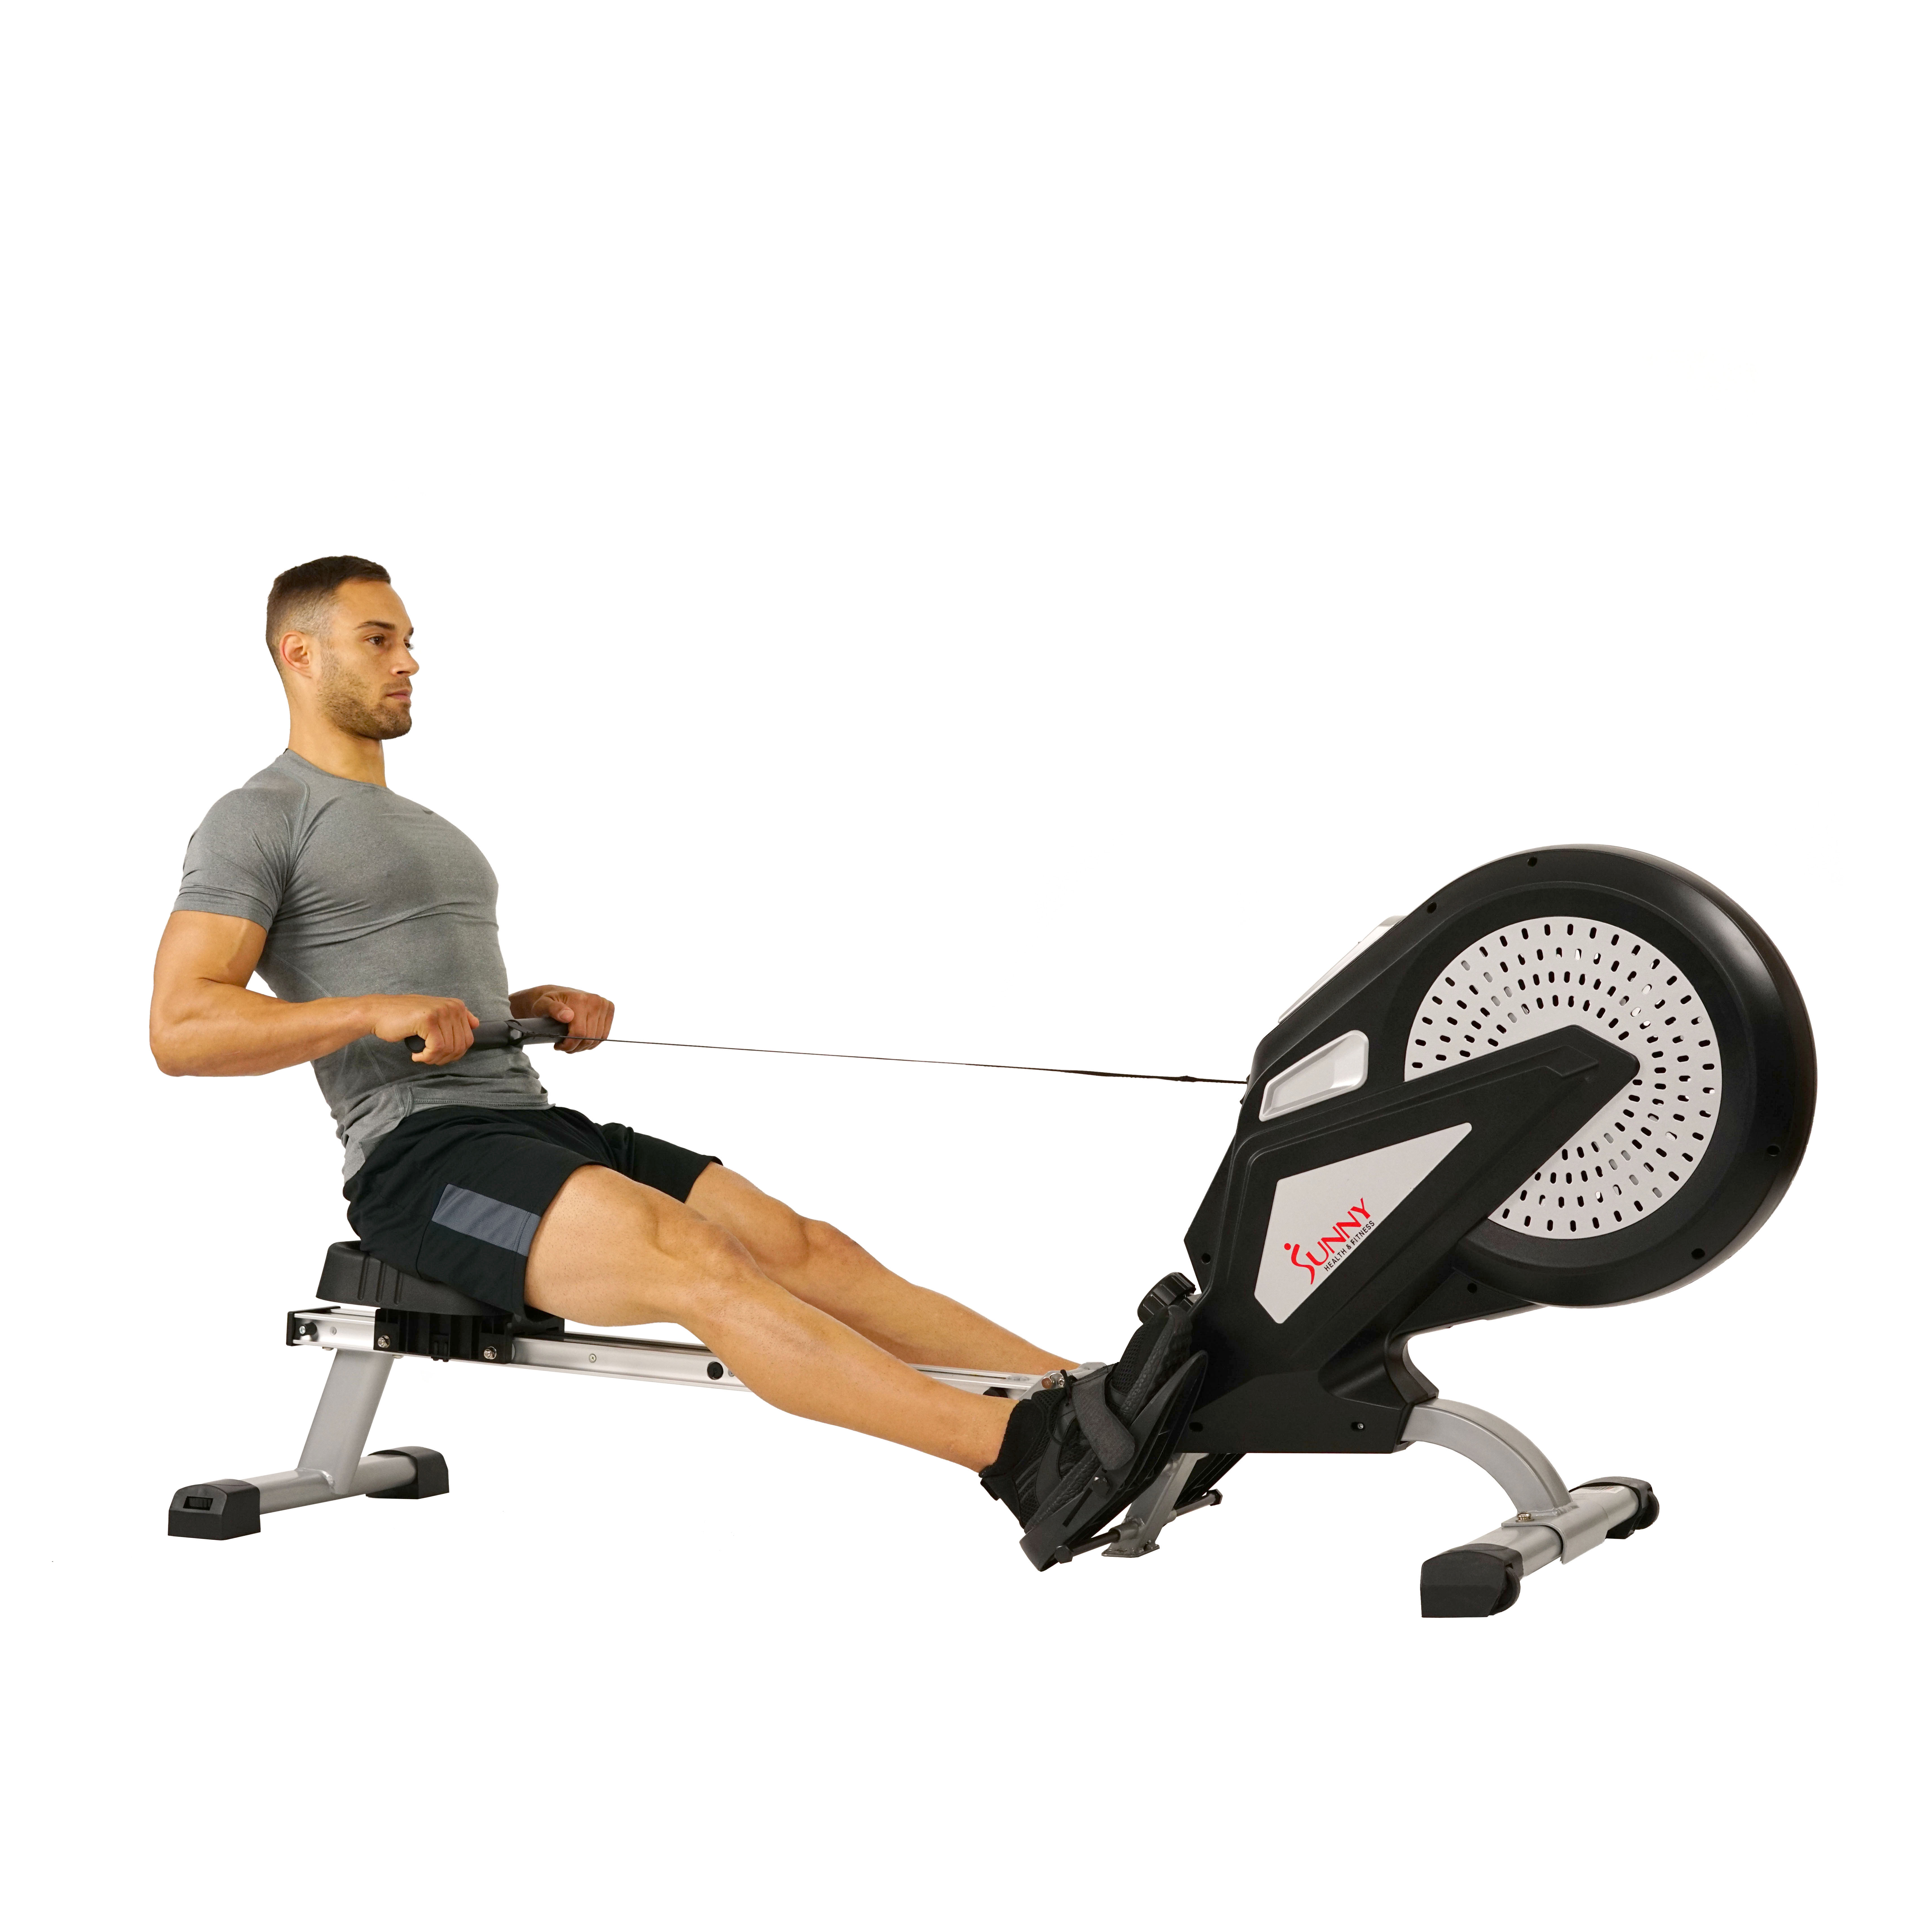 Sunny Health & Fitness SF-RW5623 Air Rowing Machine w/ LCD Monitor